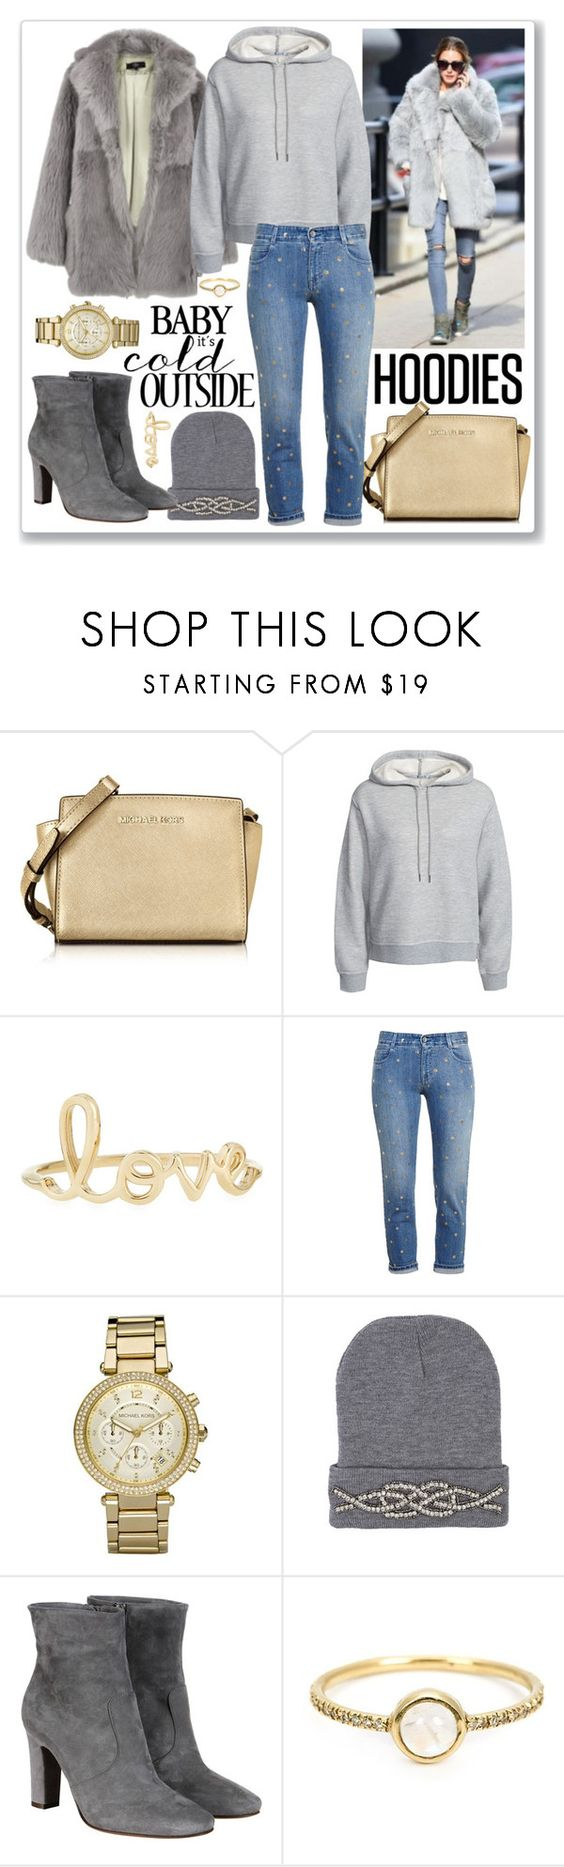 """""""Winter Layering: Hot Hoodies"""" by gogotasha ❤ liked on Polyvore featuring Michael Kors, TIBI, T By Alexander Wang, Sydney Evan, STELLA McCARTNEY, L'Autre Chose, Irene Neuwirth, women's clothing, women's fashion and women"""